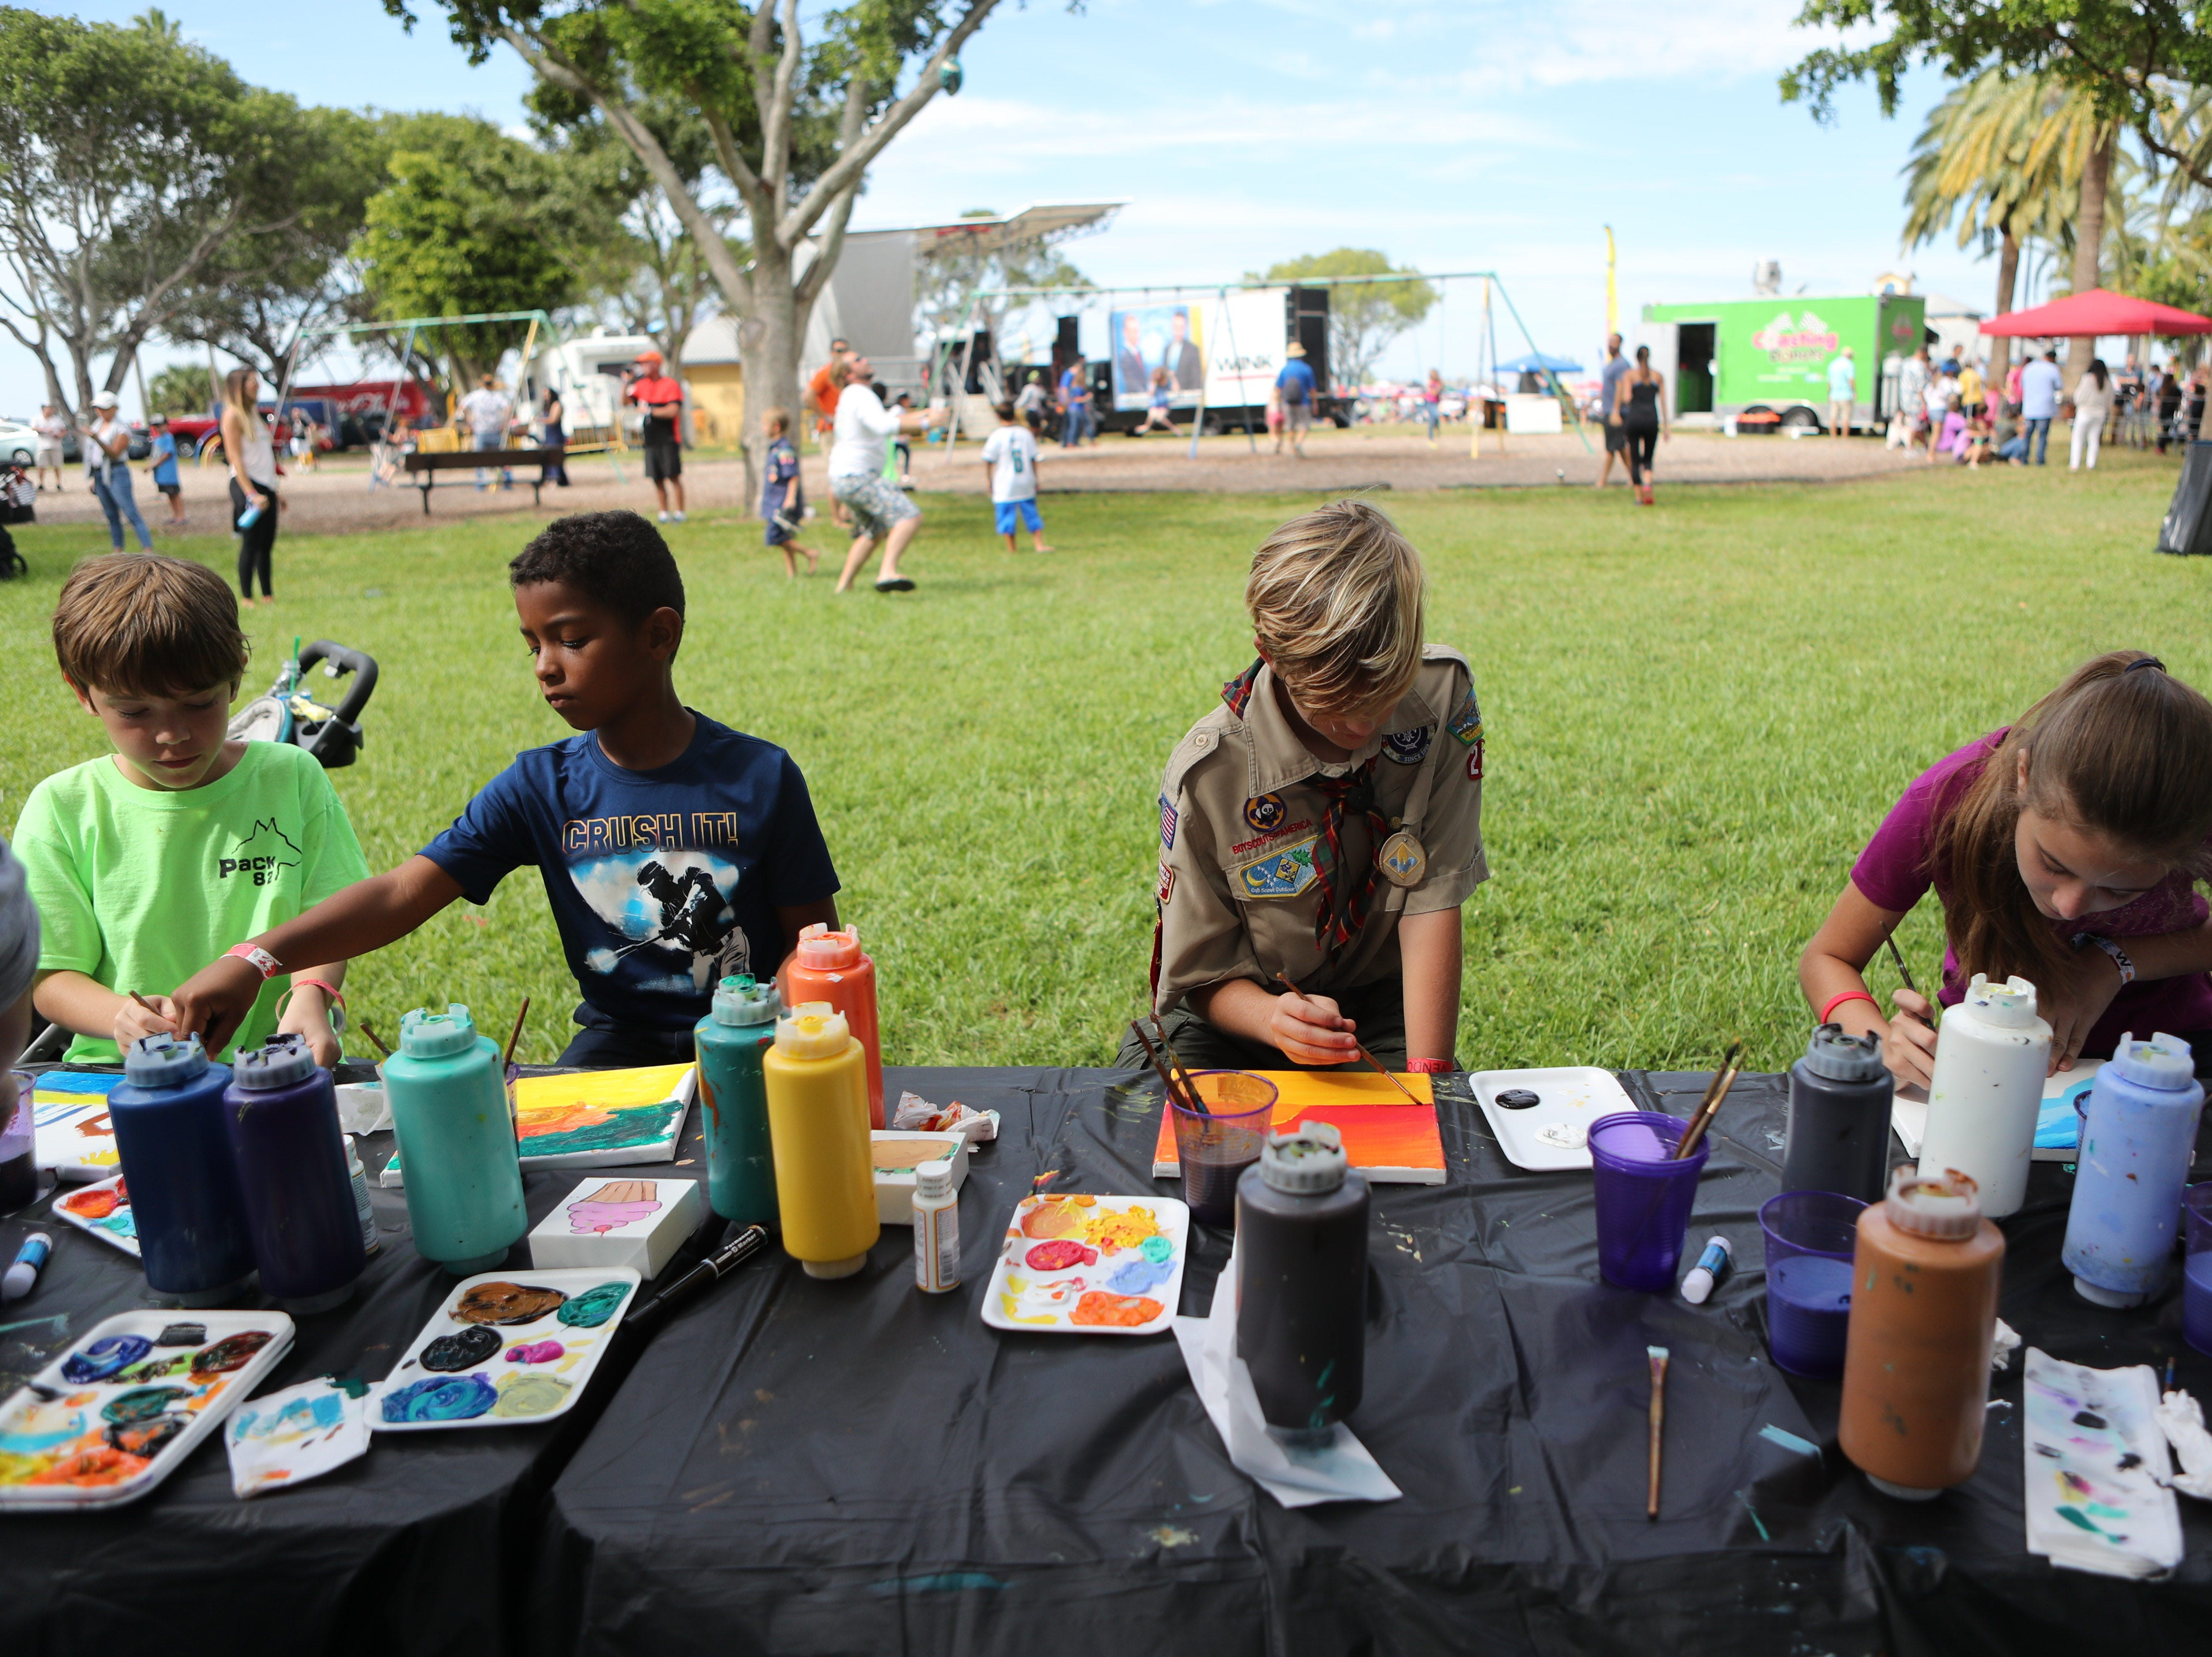 Thousands of people came out to sample food from several local restaurants and food trucks and listen to live music at the Taste of Lee at Centennial Park in downtown Fort Myers on Saturday, November 3, 2018.